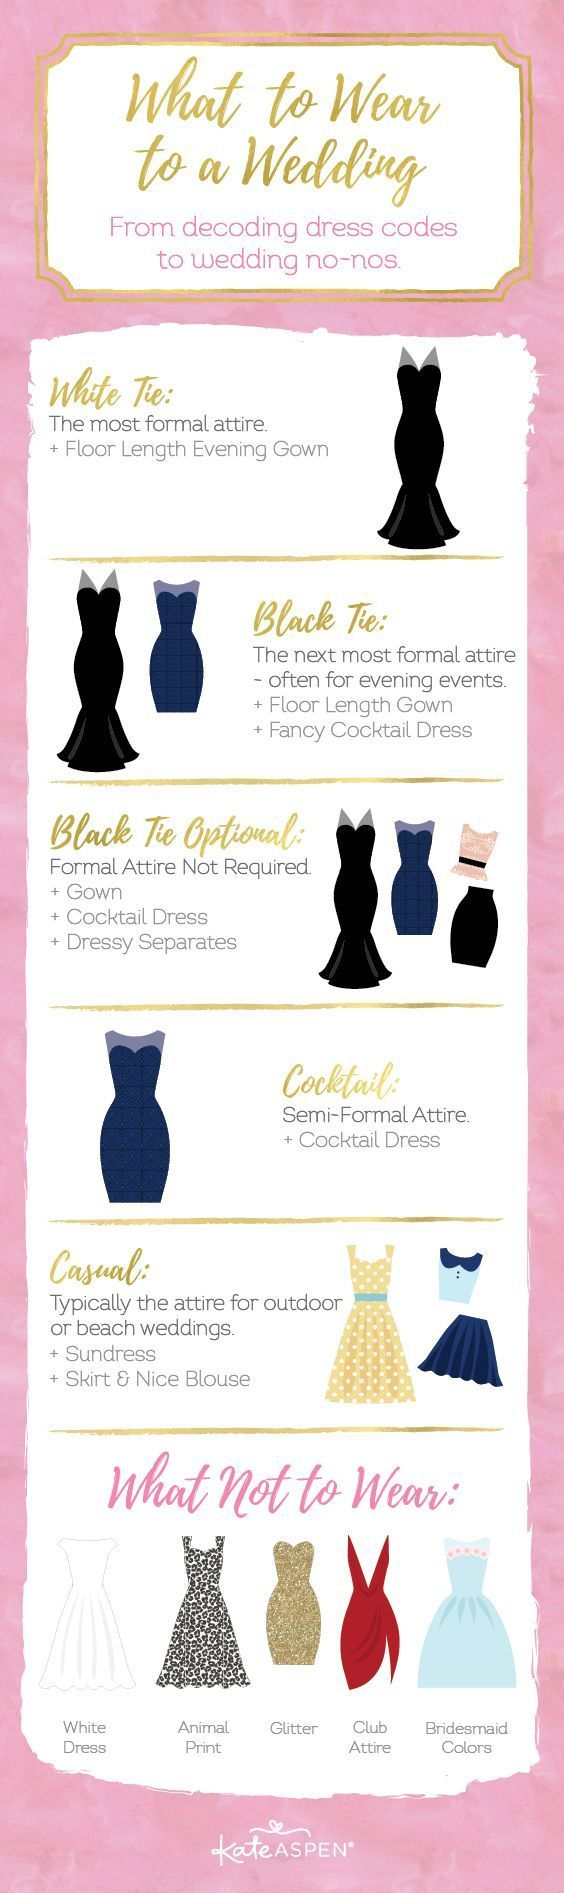 """It's important to understand dress codes. Yes, we all know the difference between black tie and cocktail attire, but what about white tie? And how casual is """"casual"""" attire? From decoding dress codes to wedding no-nos, we're here to help you decide what to wear to a wedding! 